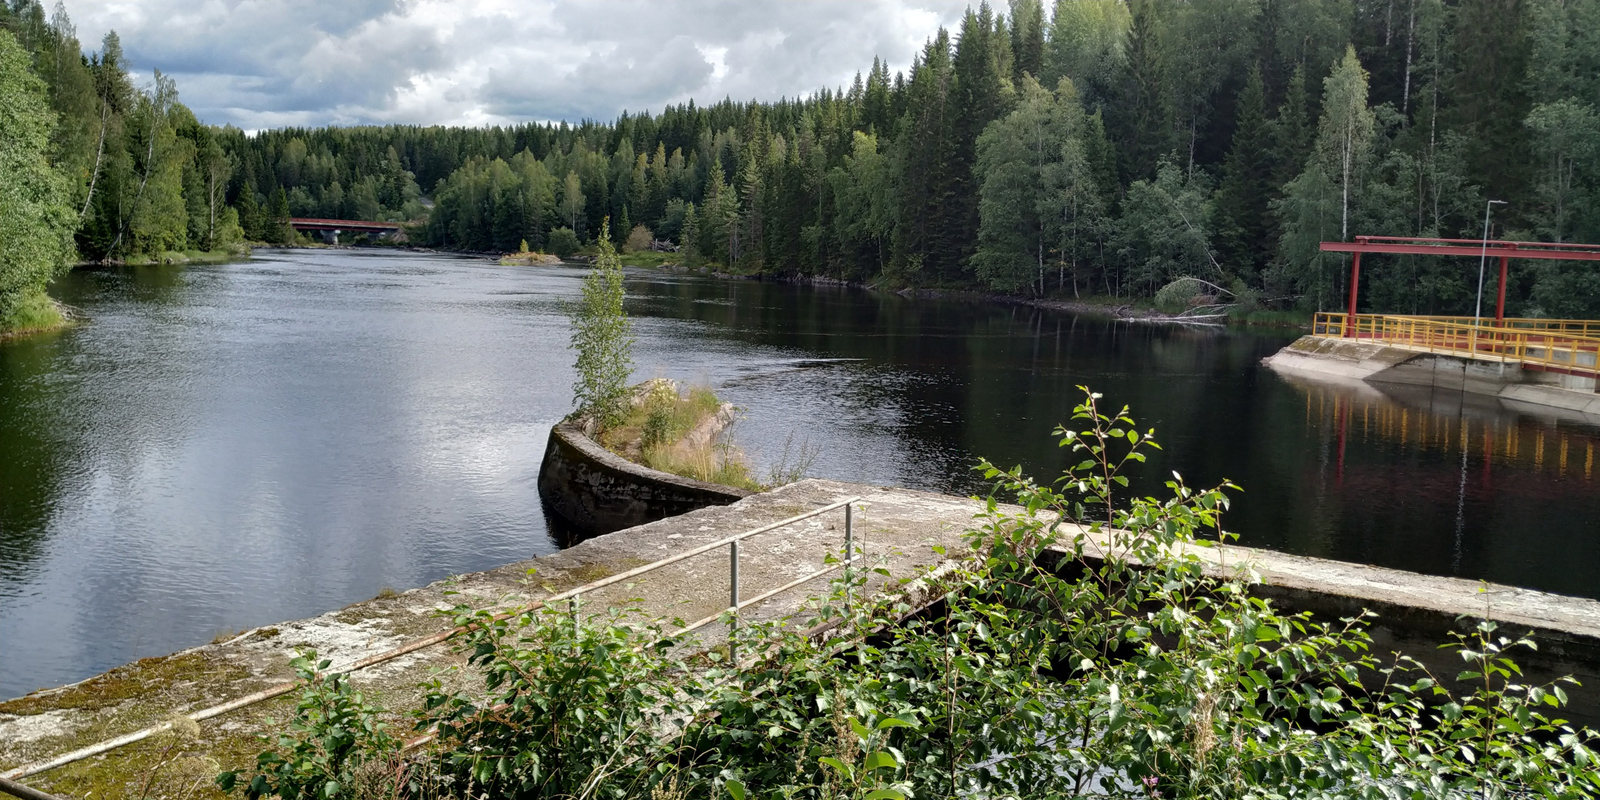 August 16, 2019. Hämekoski hydroelectric power plant